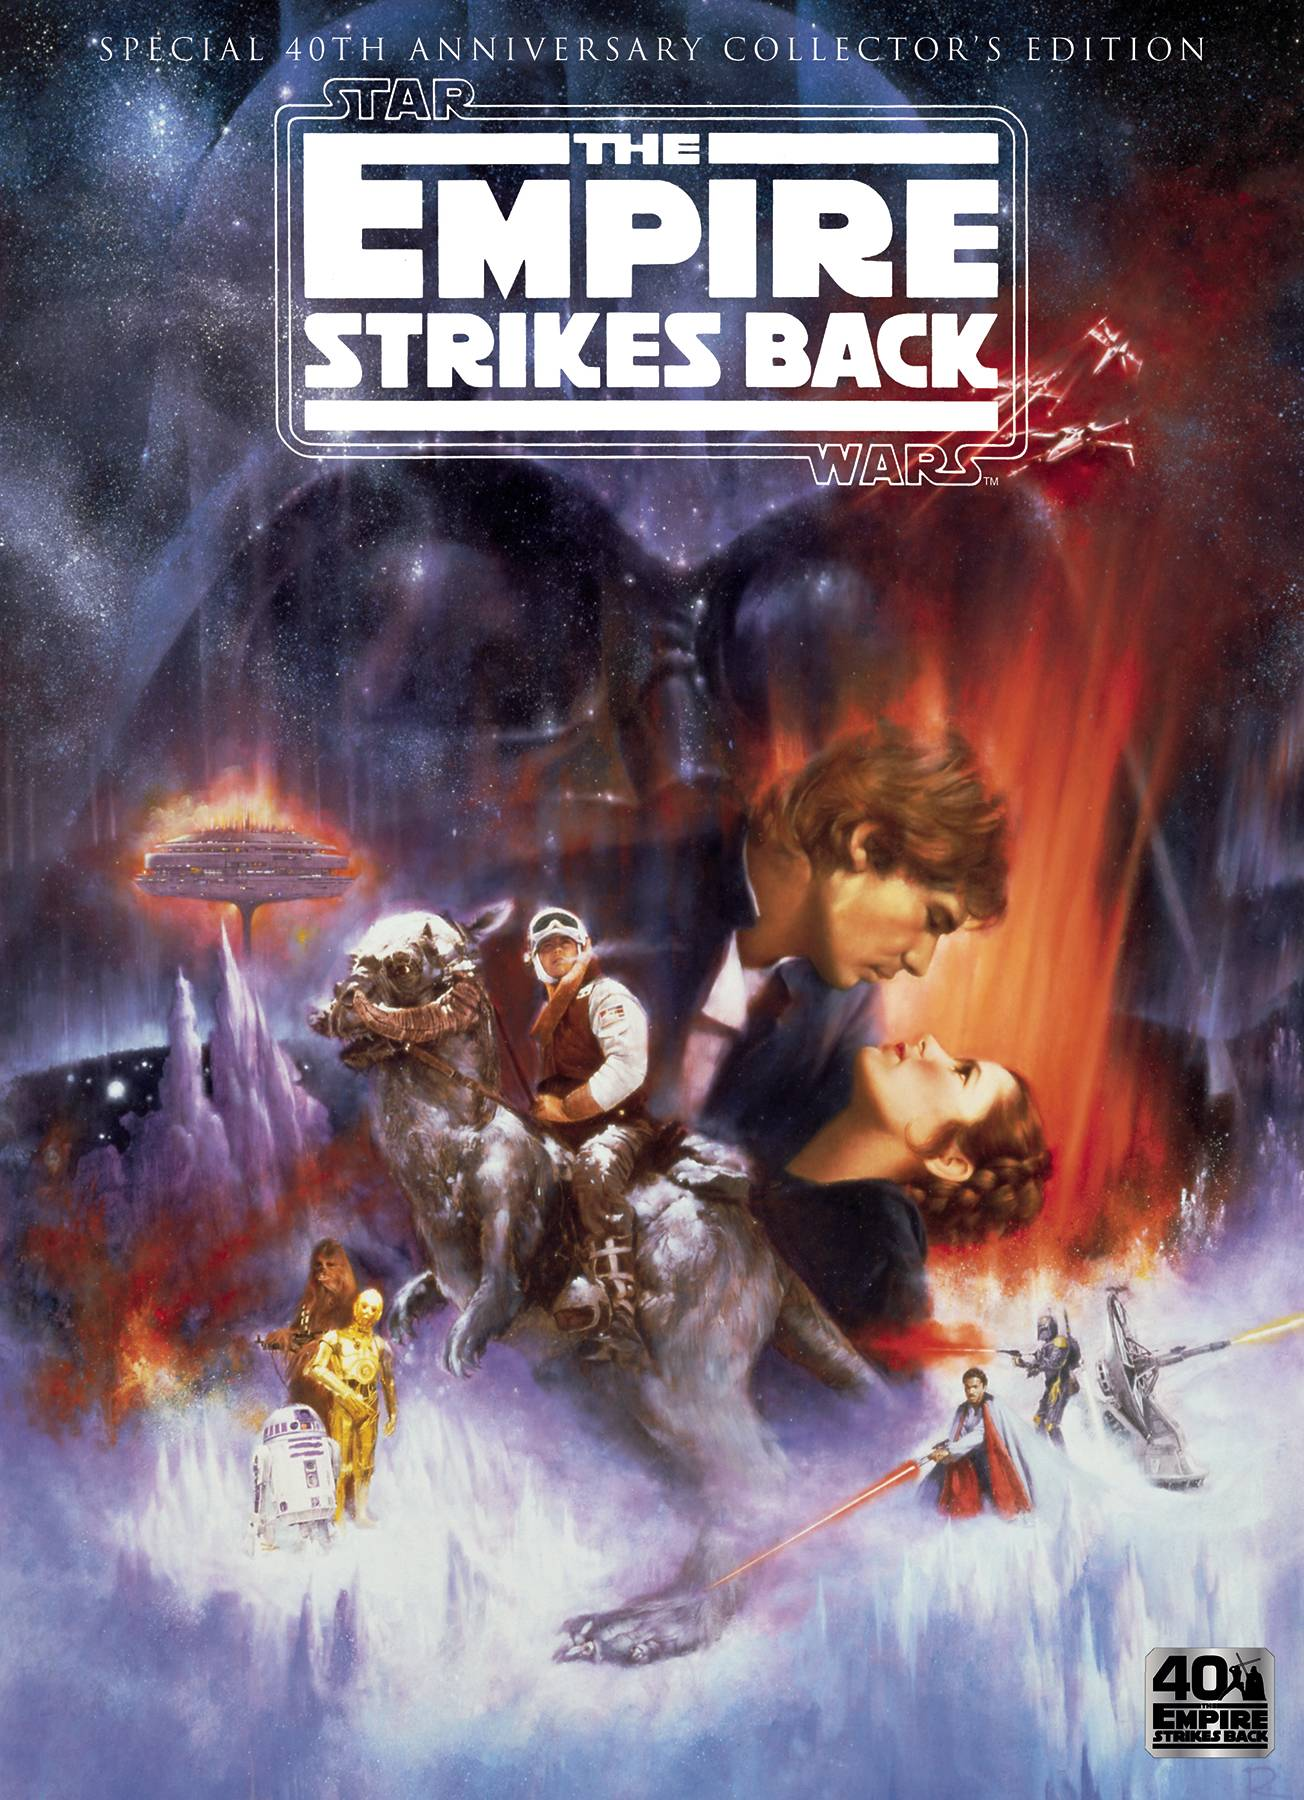 Star Wars: The Empire Strikes Back Anniversary Special Newsstand Edition